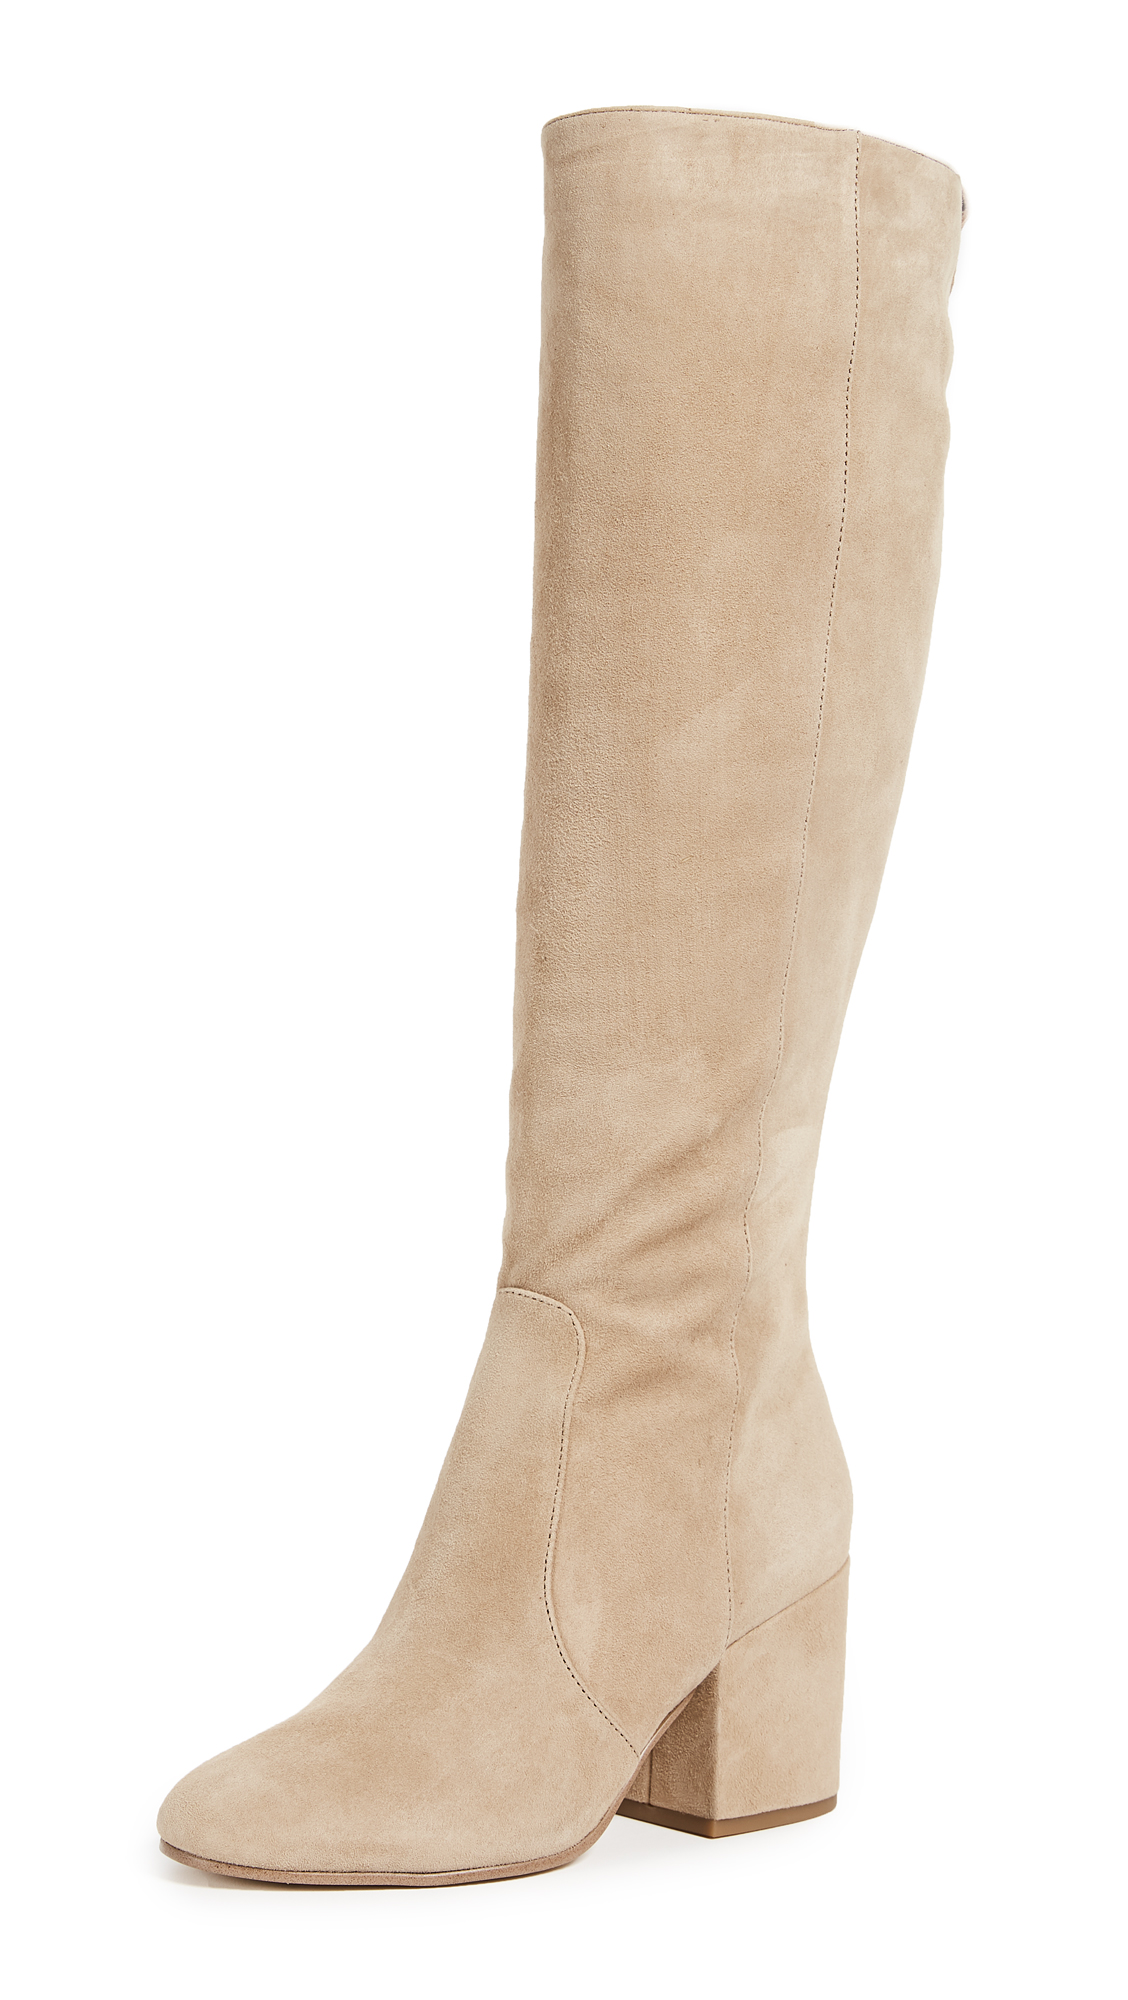 Sam Edelman Thora Tall Boots - Oatmeal